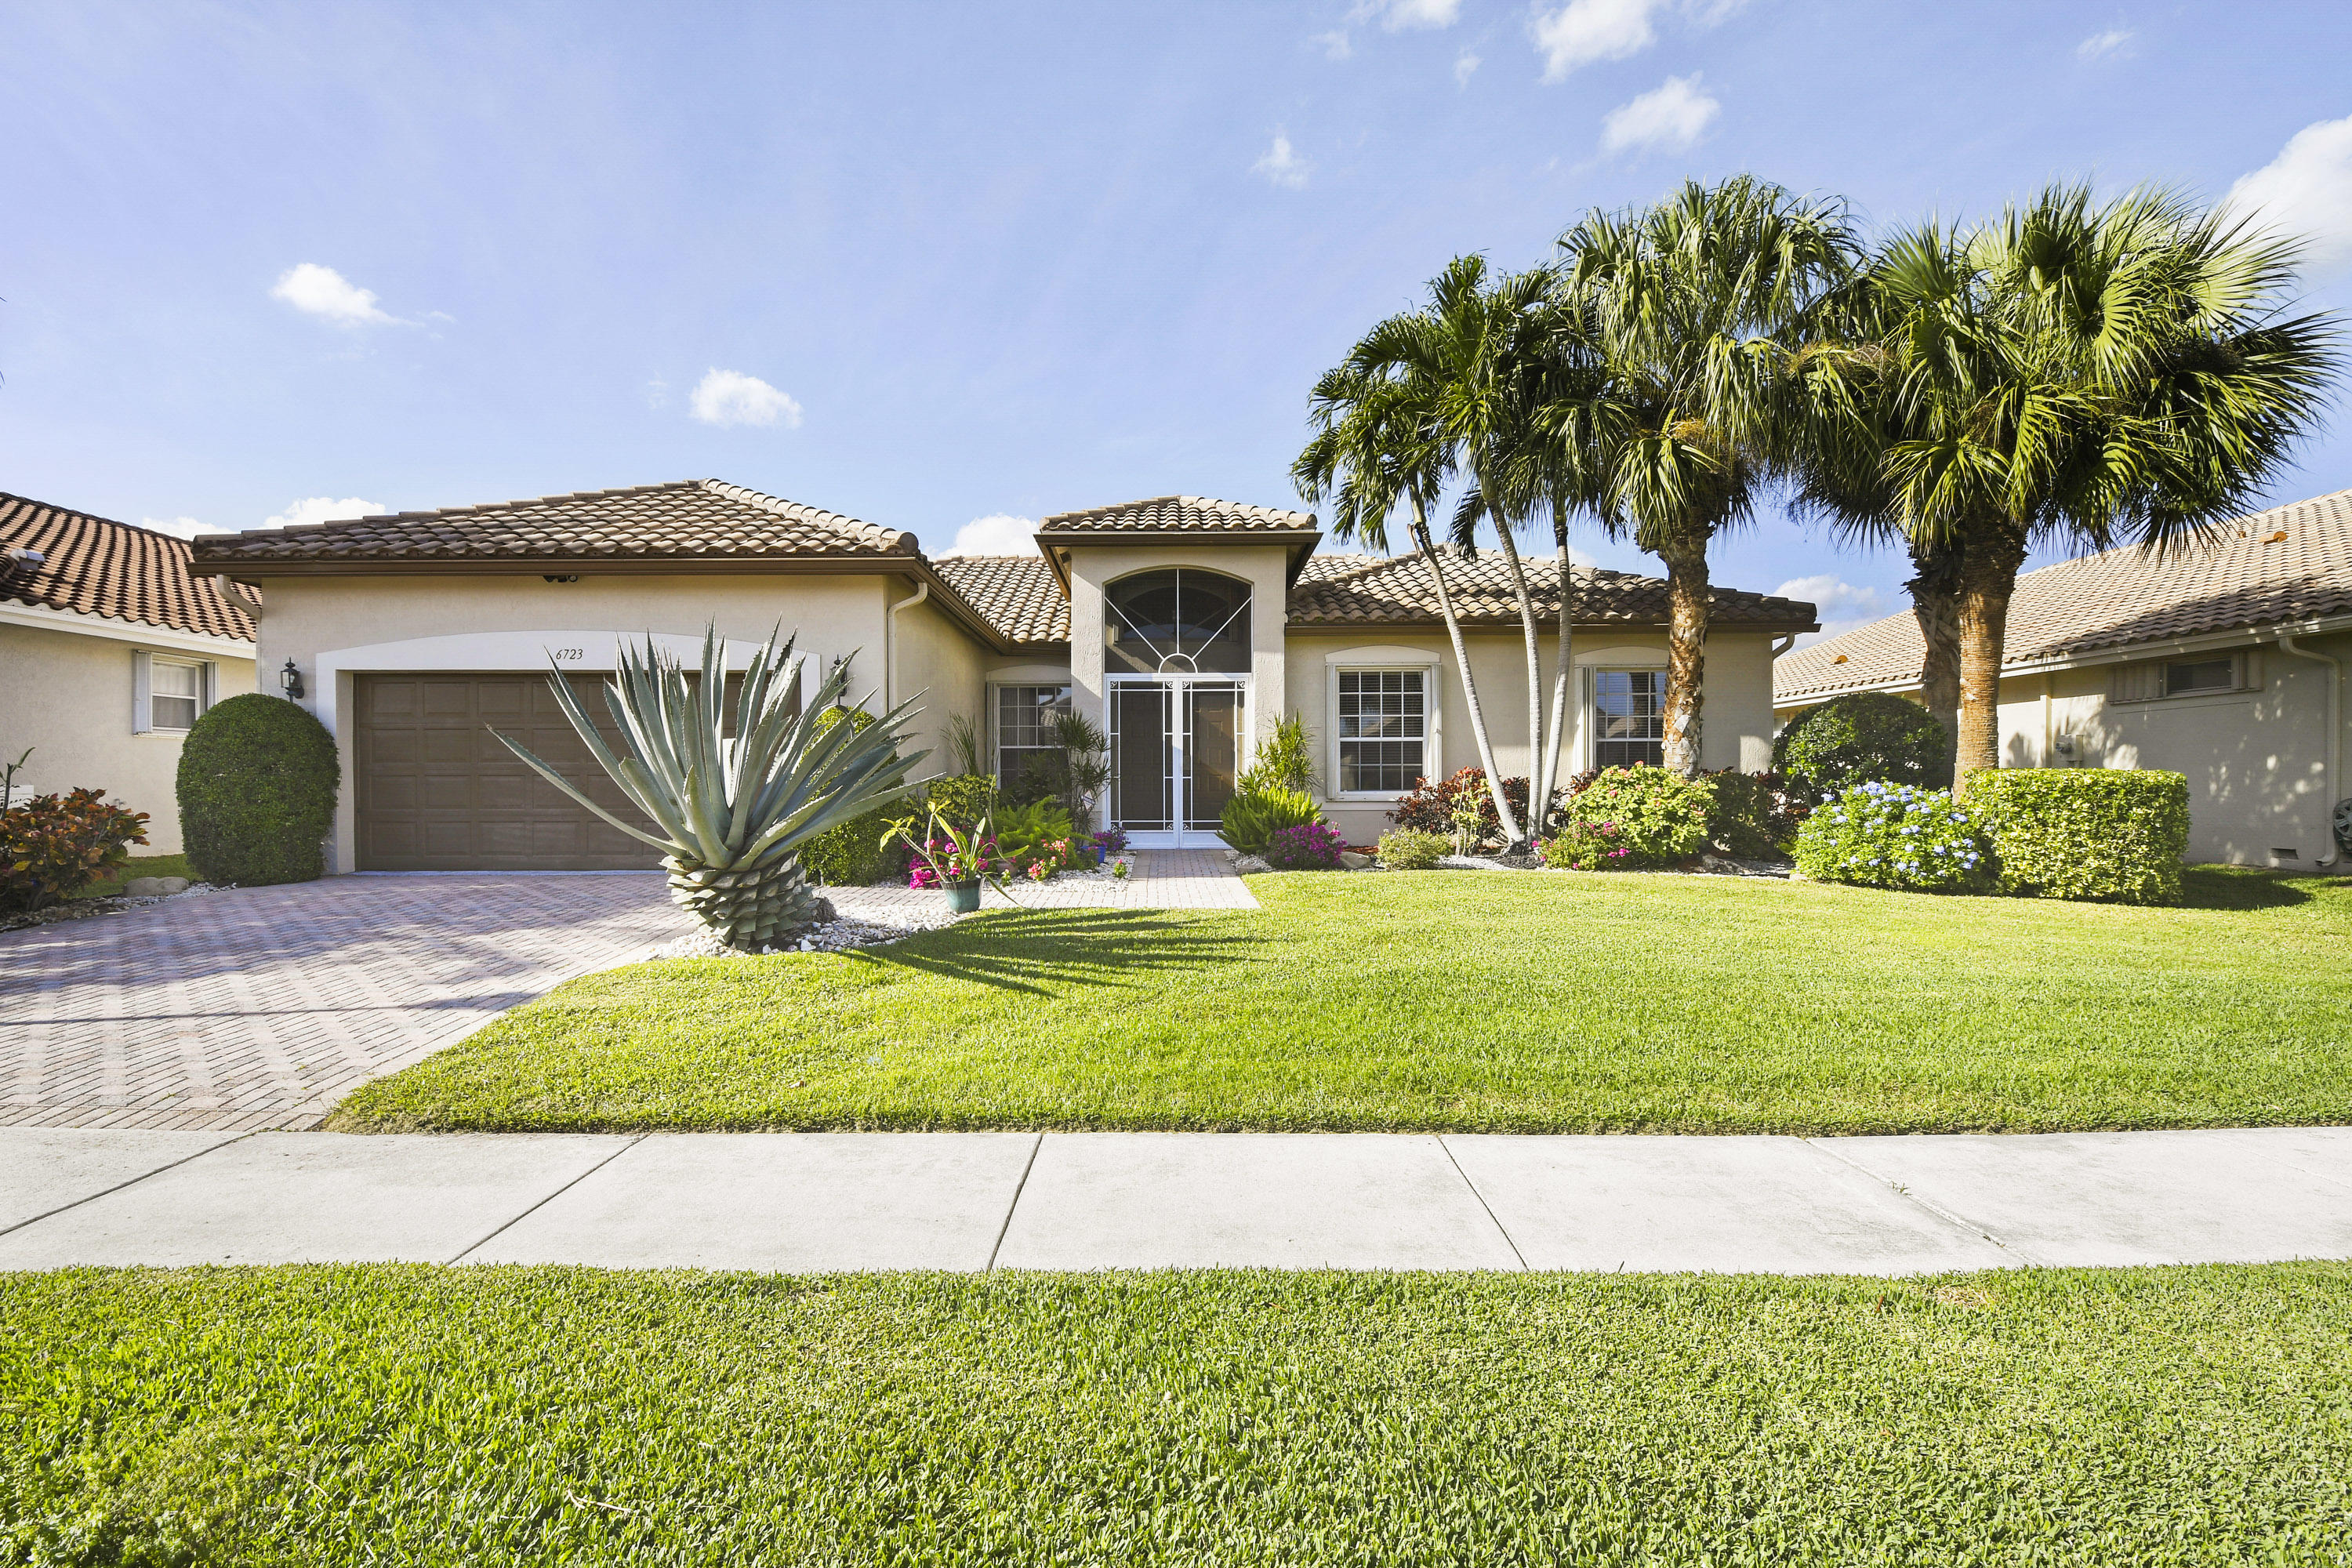 Cascades home 6723 Chimere Terrace Boynton Beach FL 33437